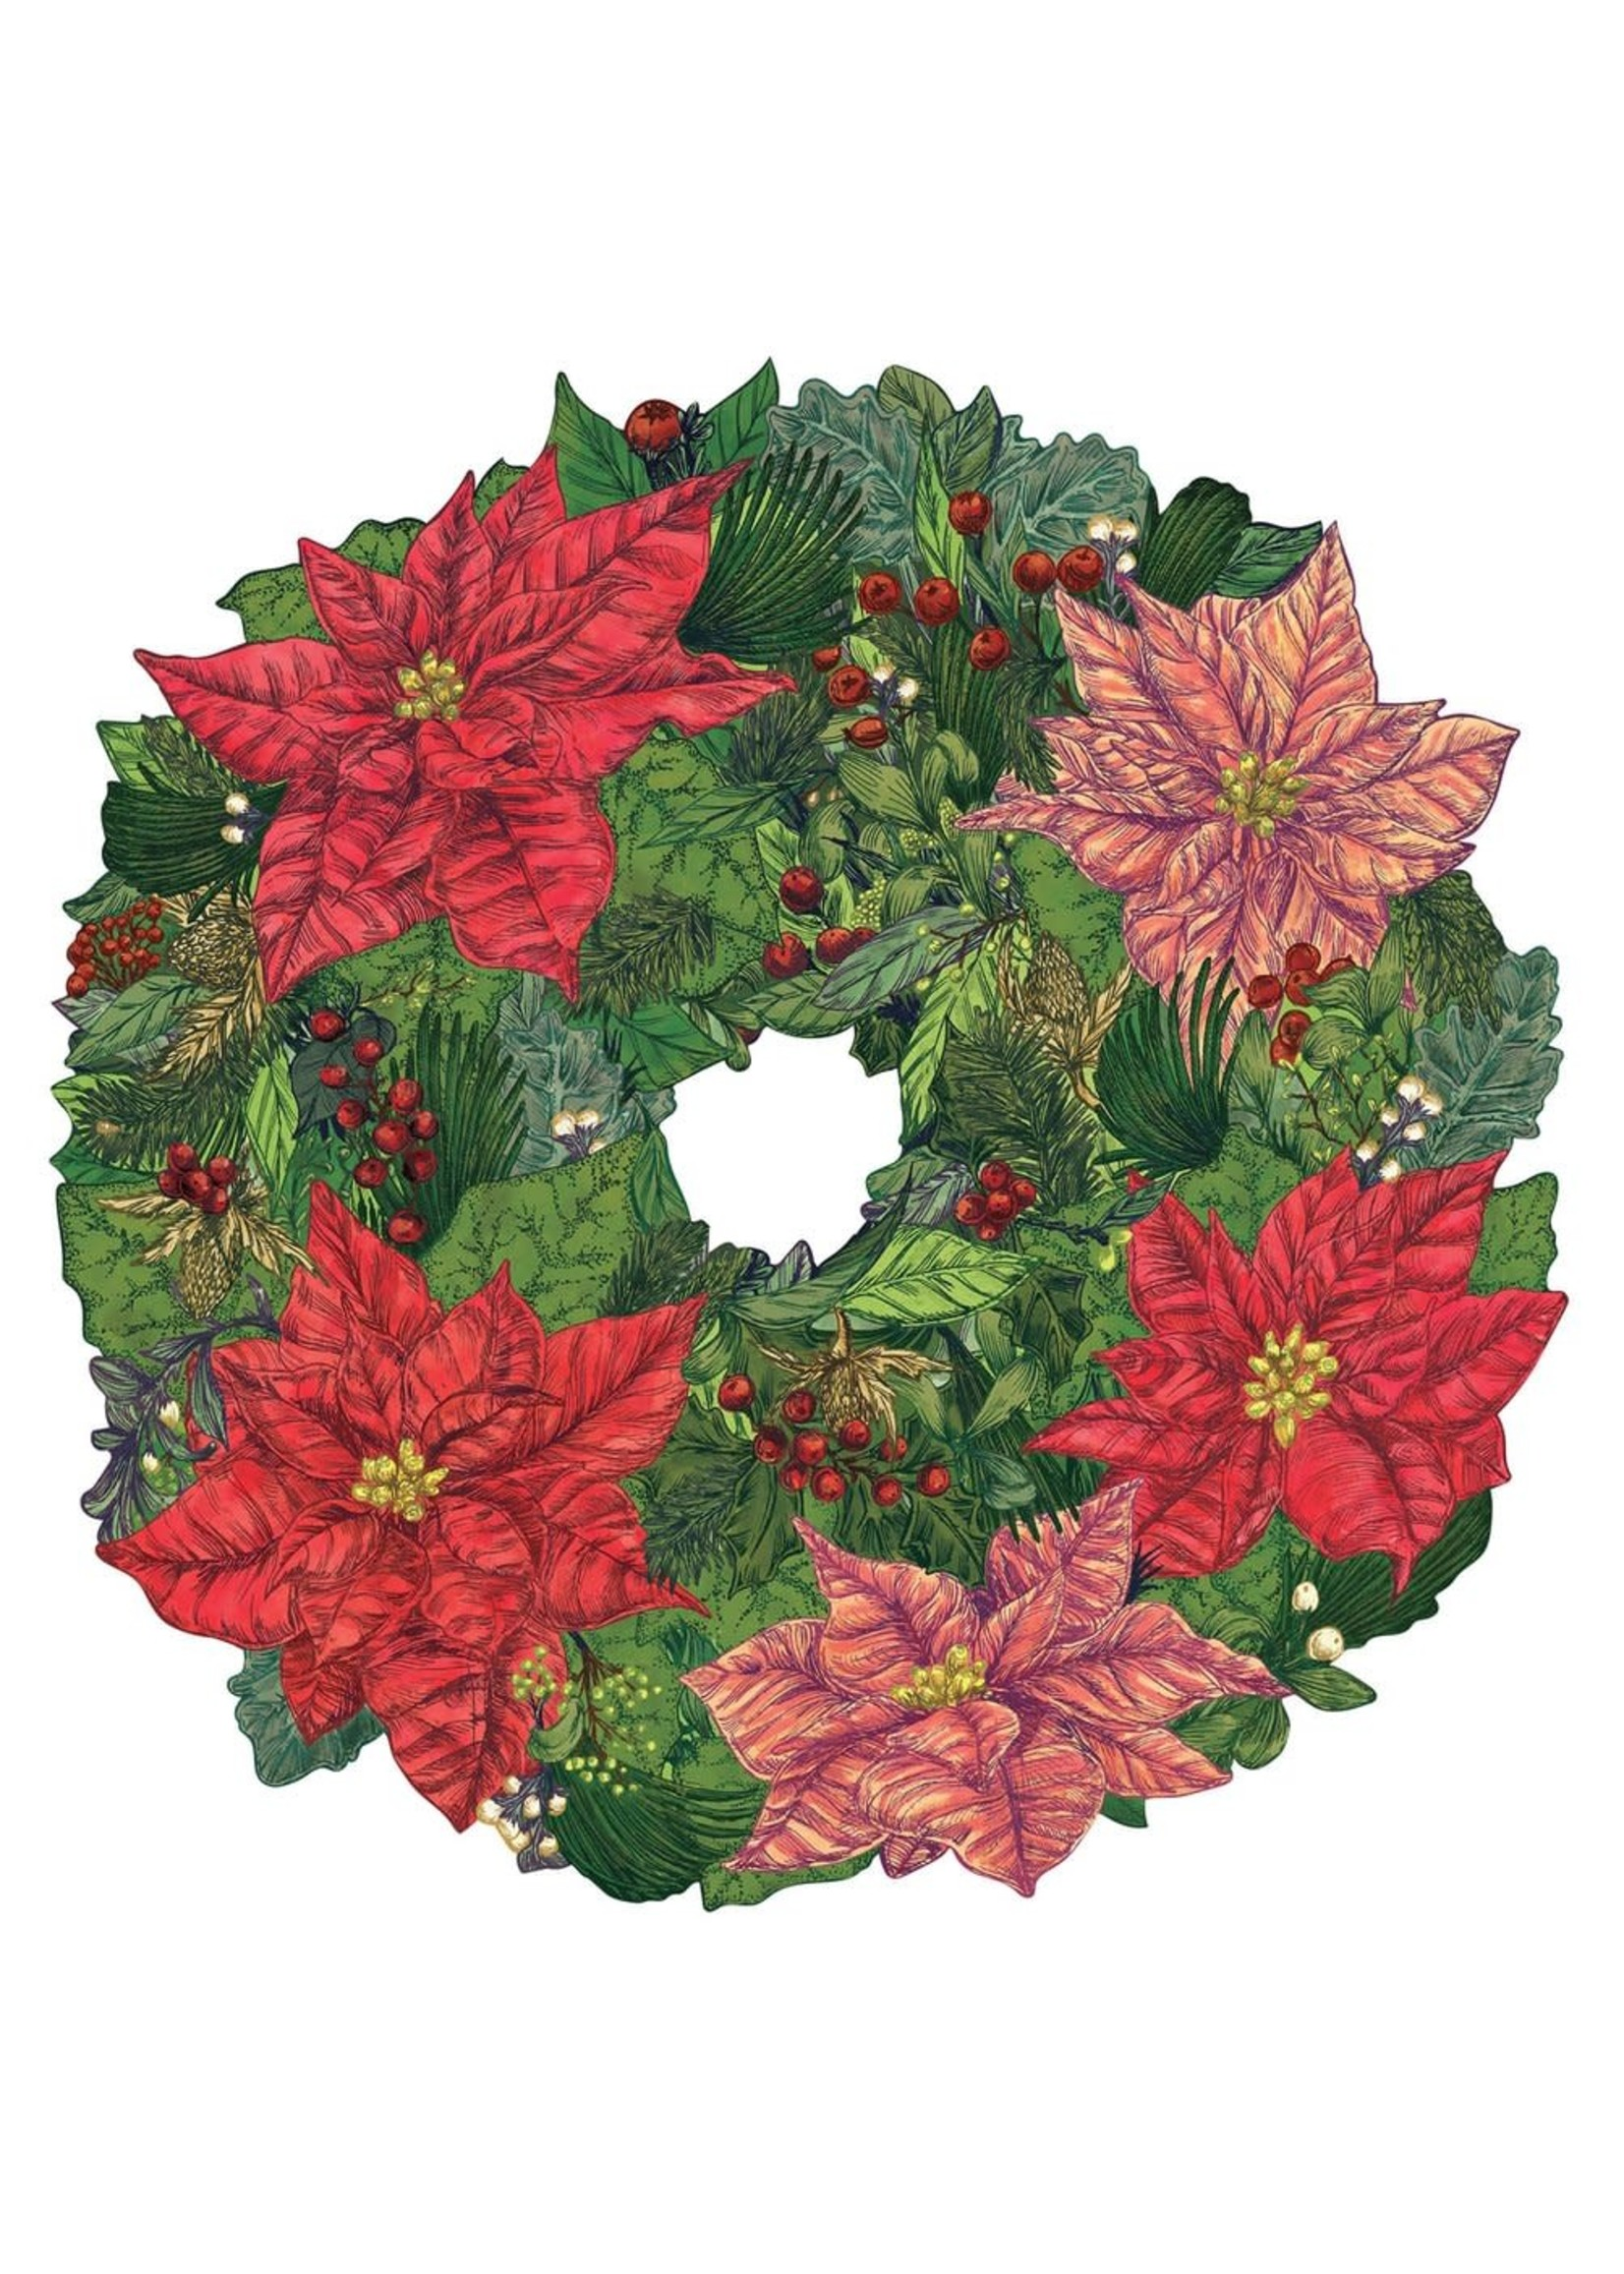 Hester & Cook Paper Placemats - Poinsettia Wreath